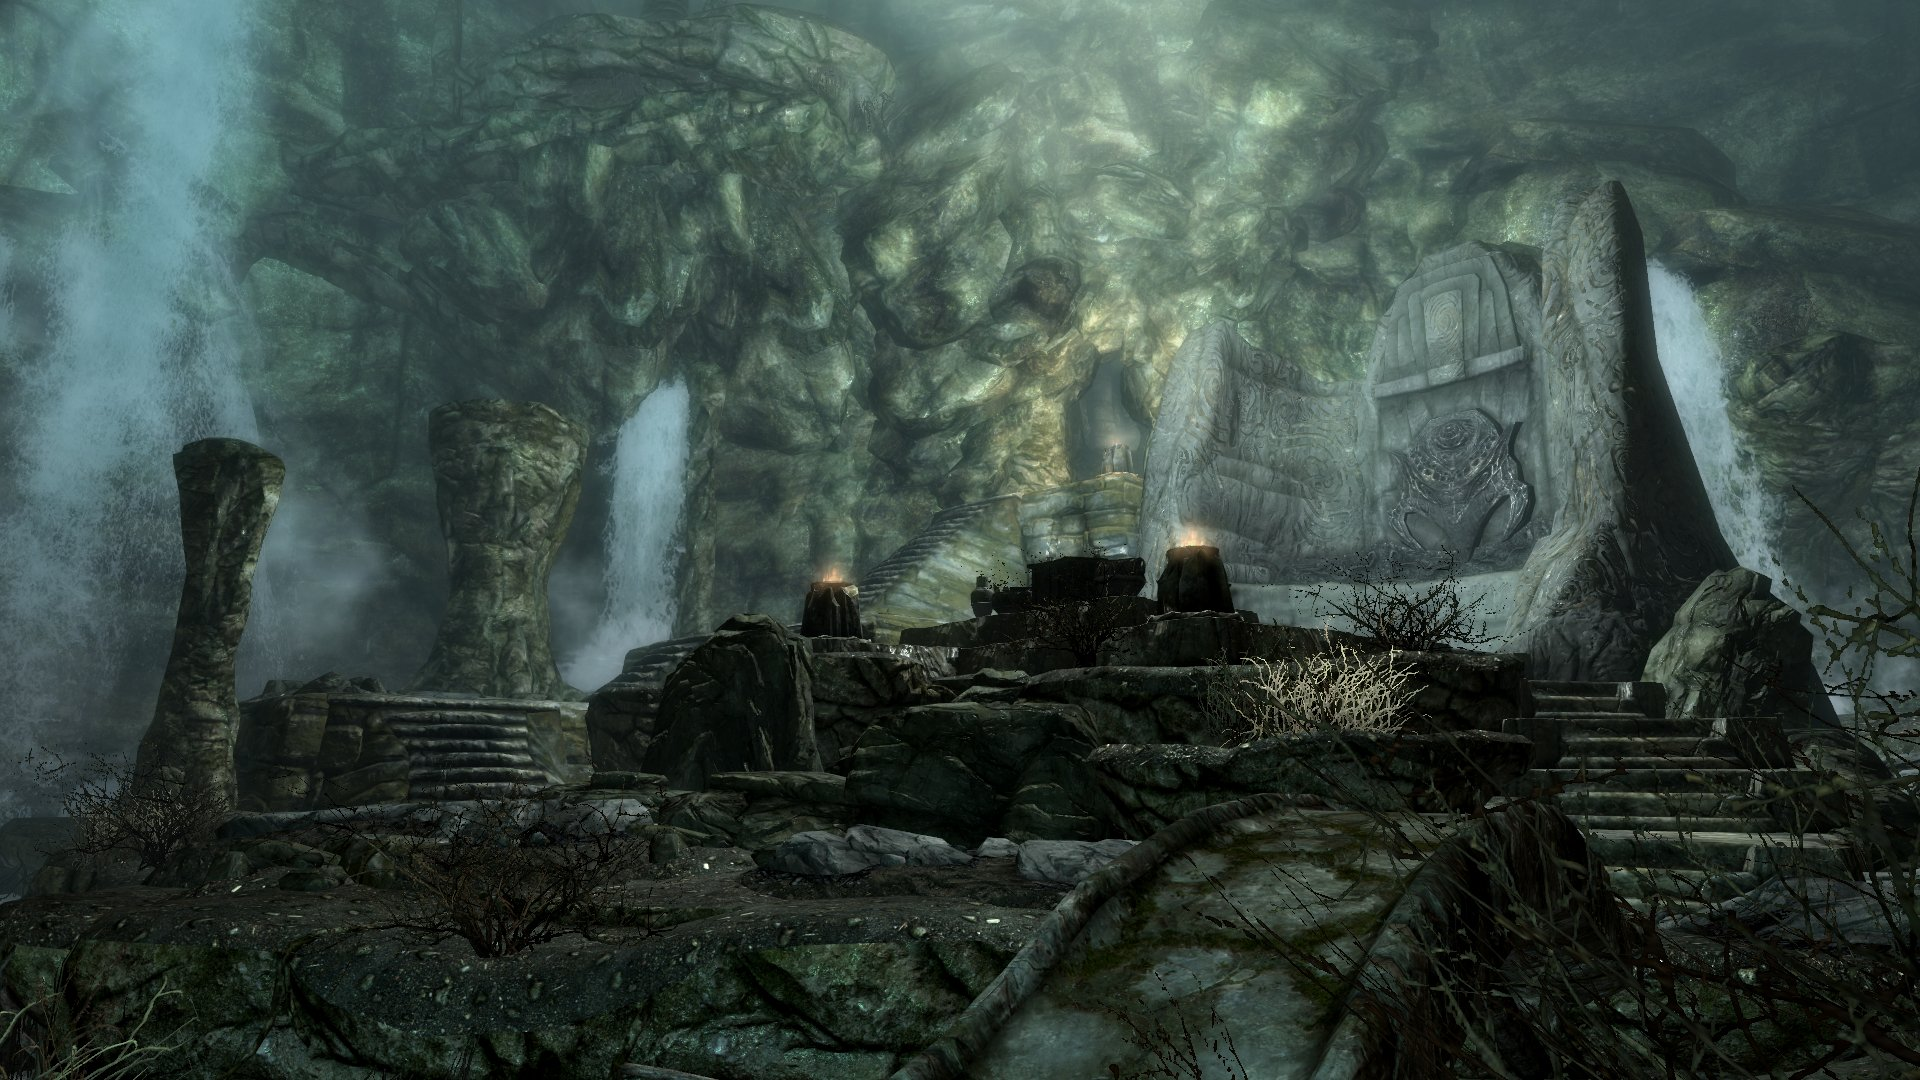 Forest Hd Live Wallpaper For Pc The Elder Scrolls V Skyrim Waterfall Nordic Ruins